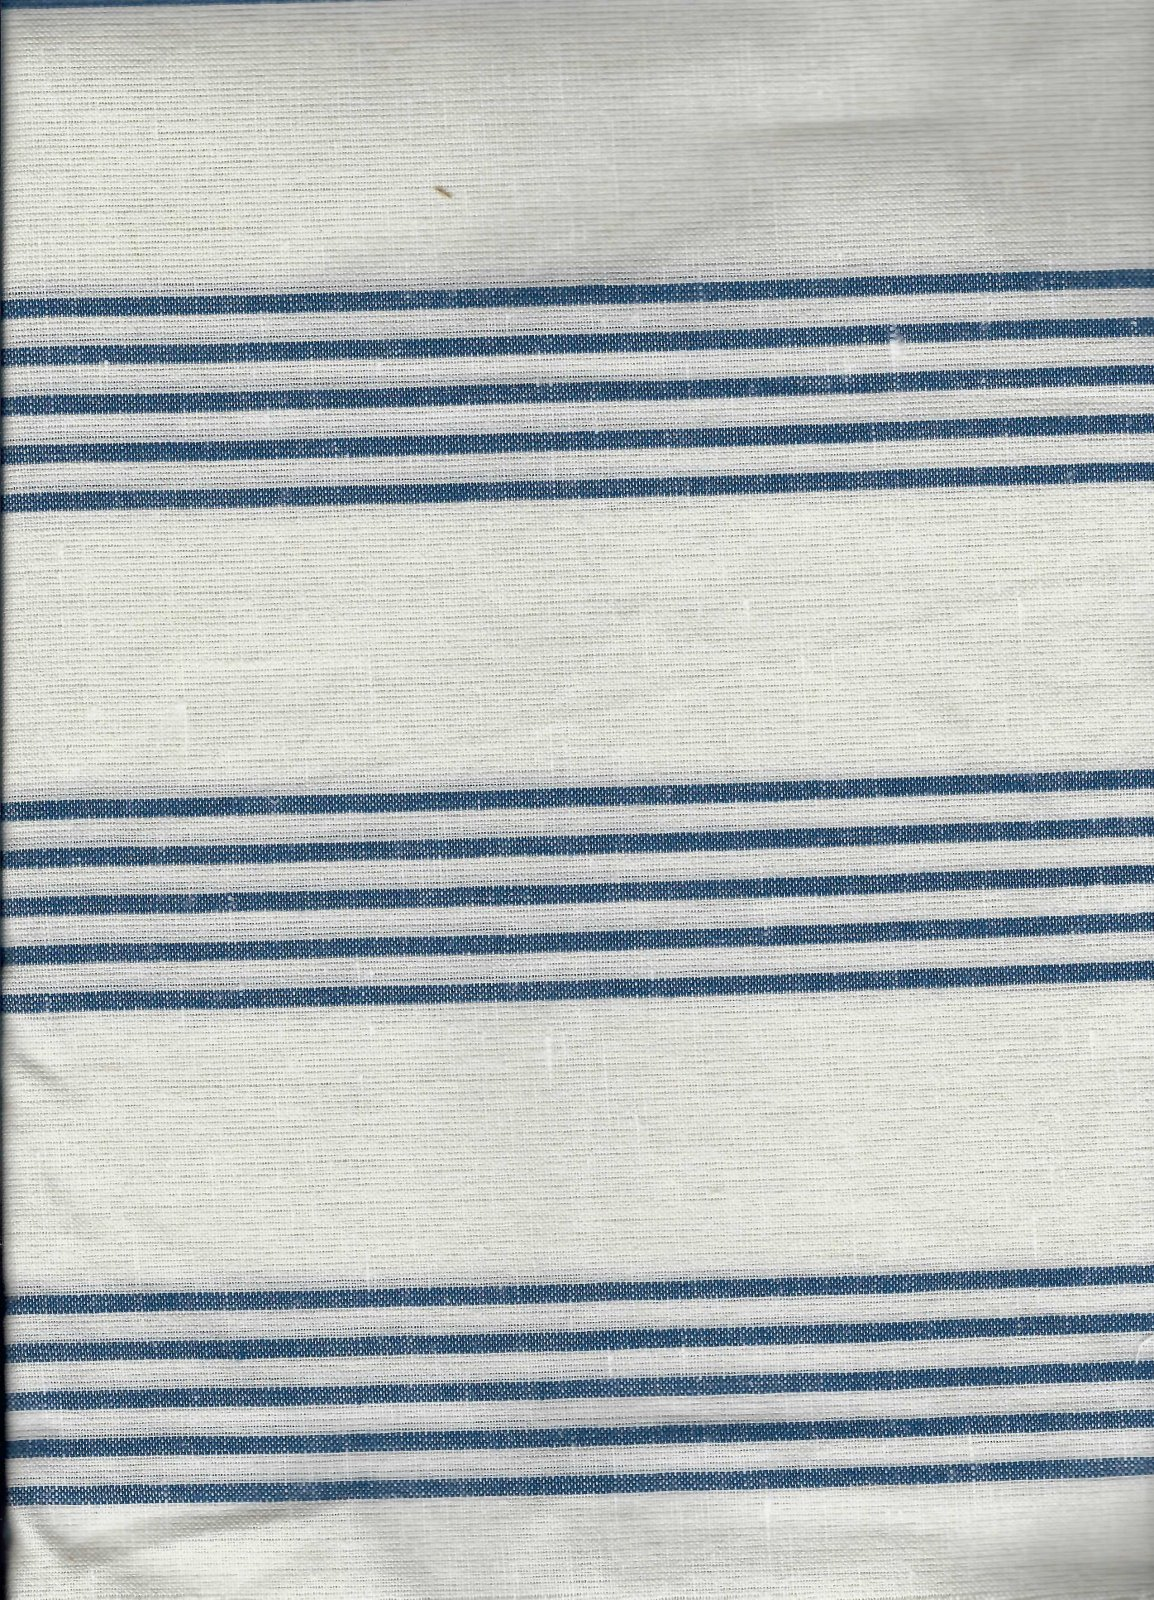 Toweling - 3 yards - Blue Stripe on Off White